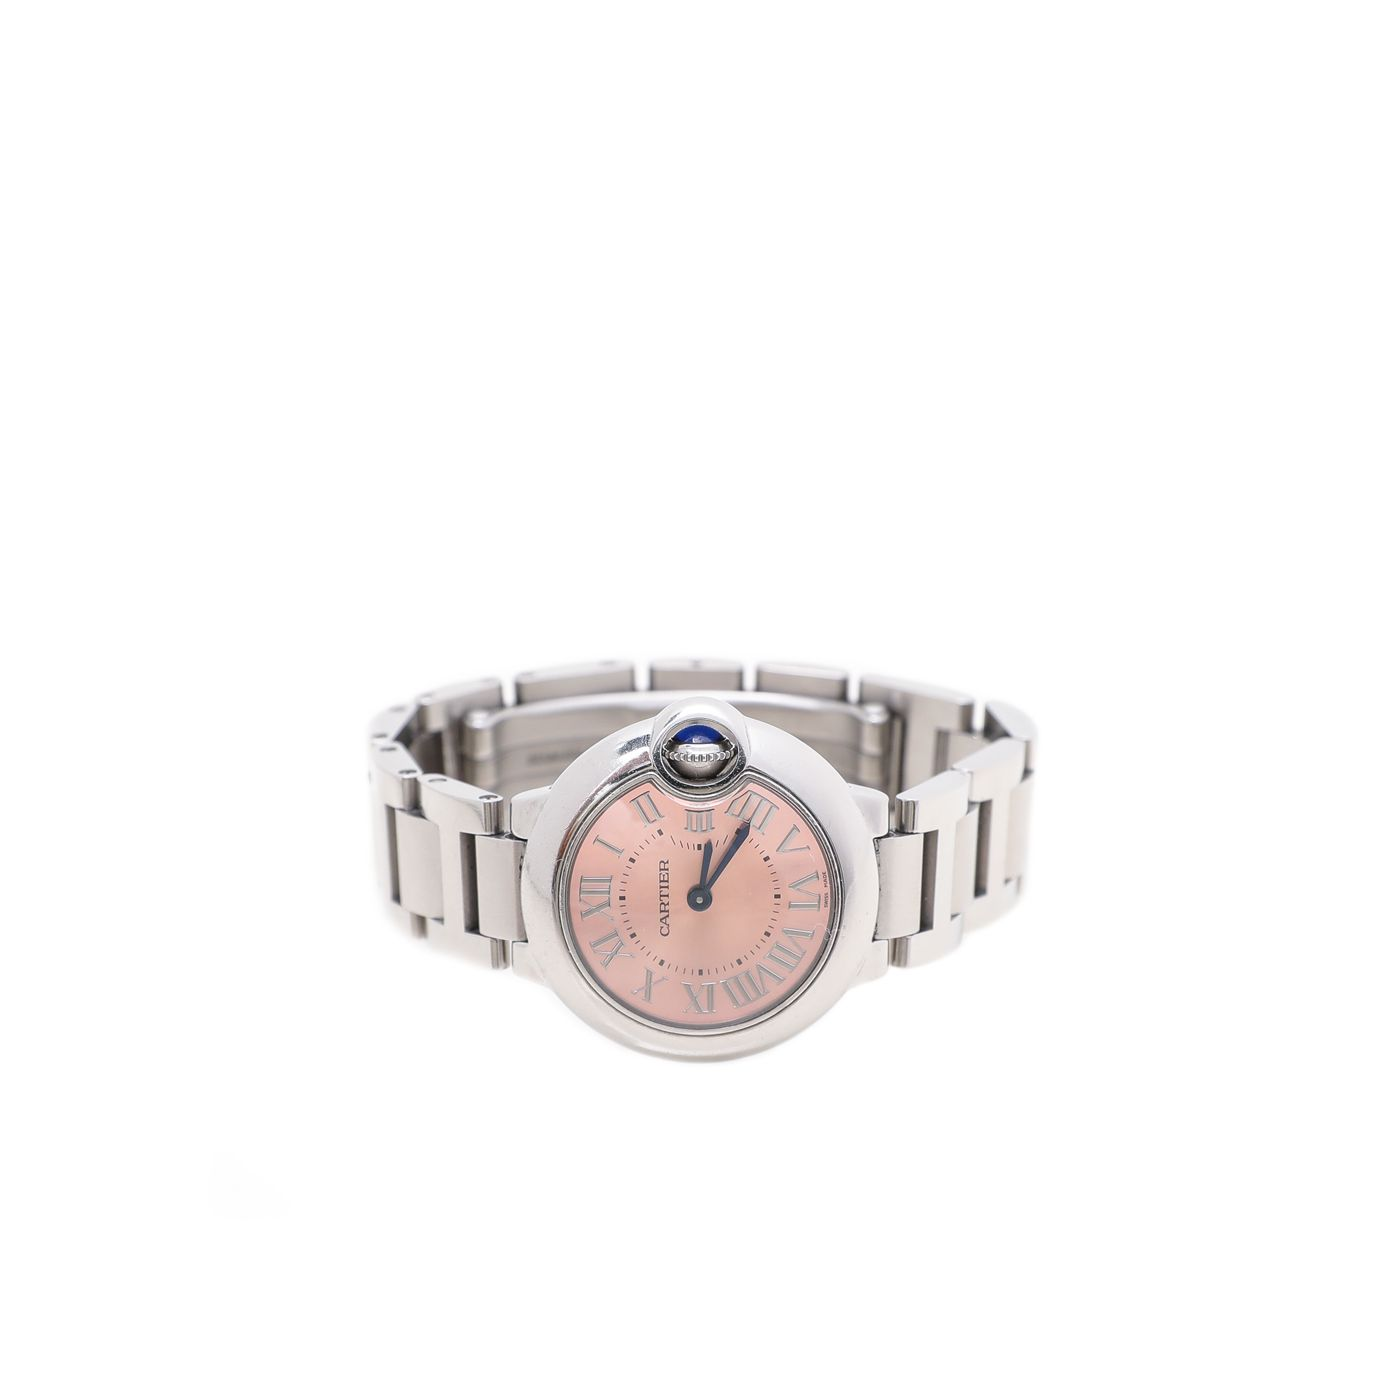 Cartier Pink Ballon Belu De Cartier 28.6mm Watch